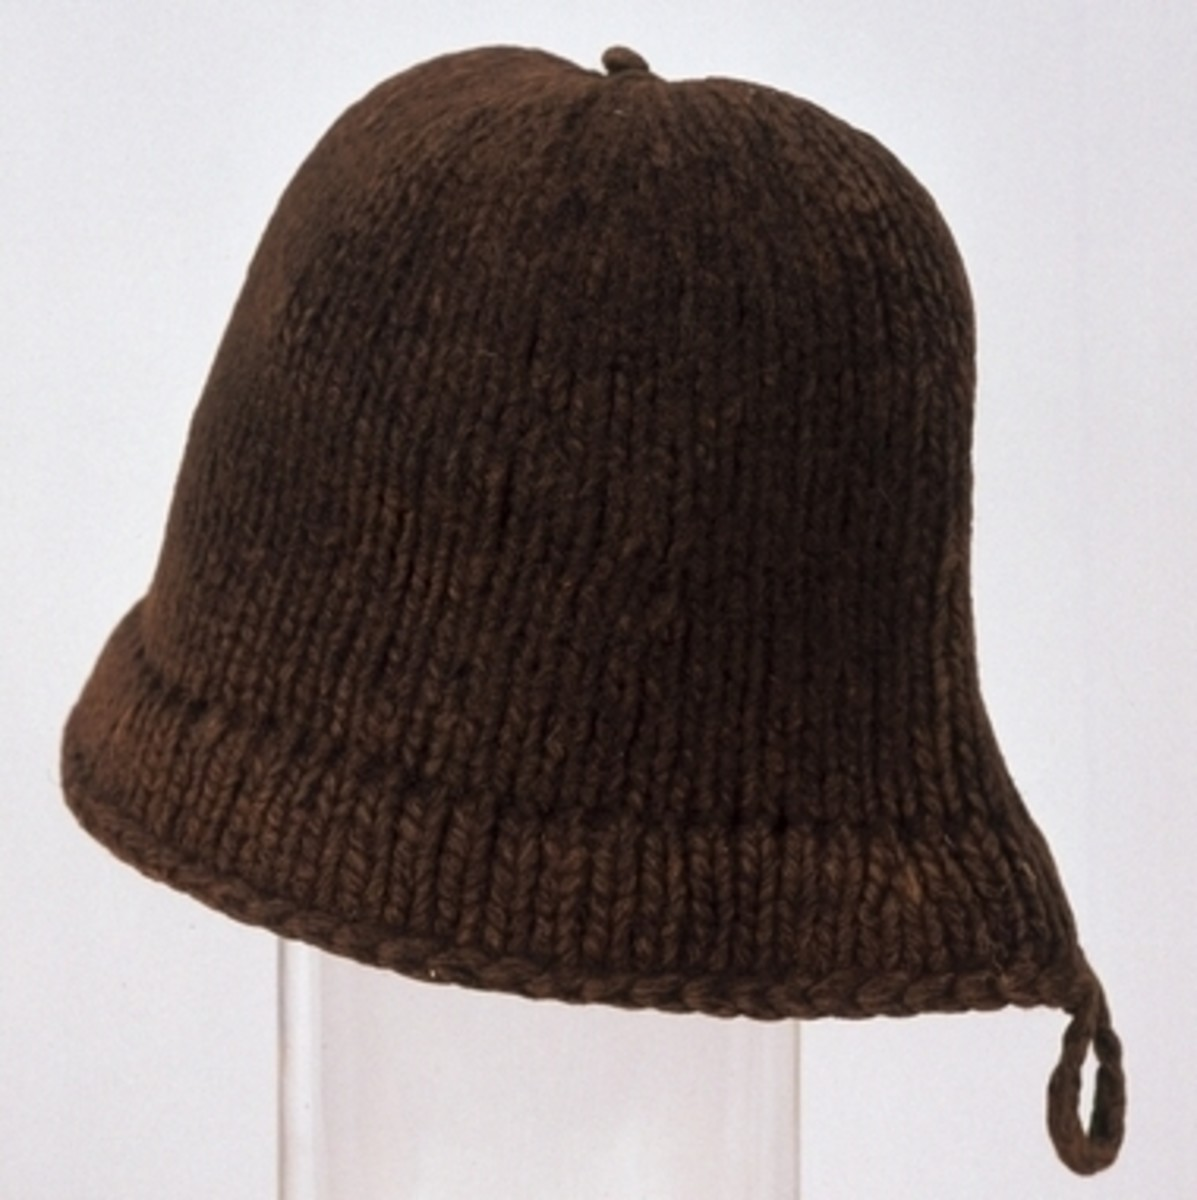 Many male Plimouth settlers wore these woolen Welsh hats, according to the Provisons List of 1630 in the Plimouth Plantation related museum (The Pilgrim Hall).